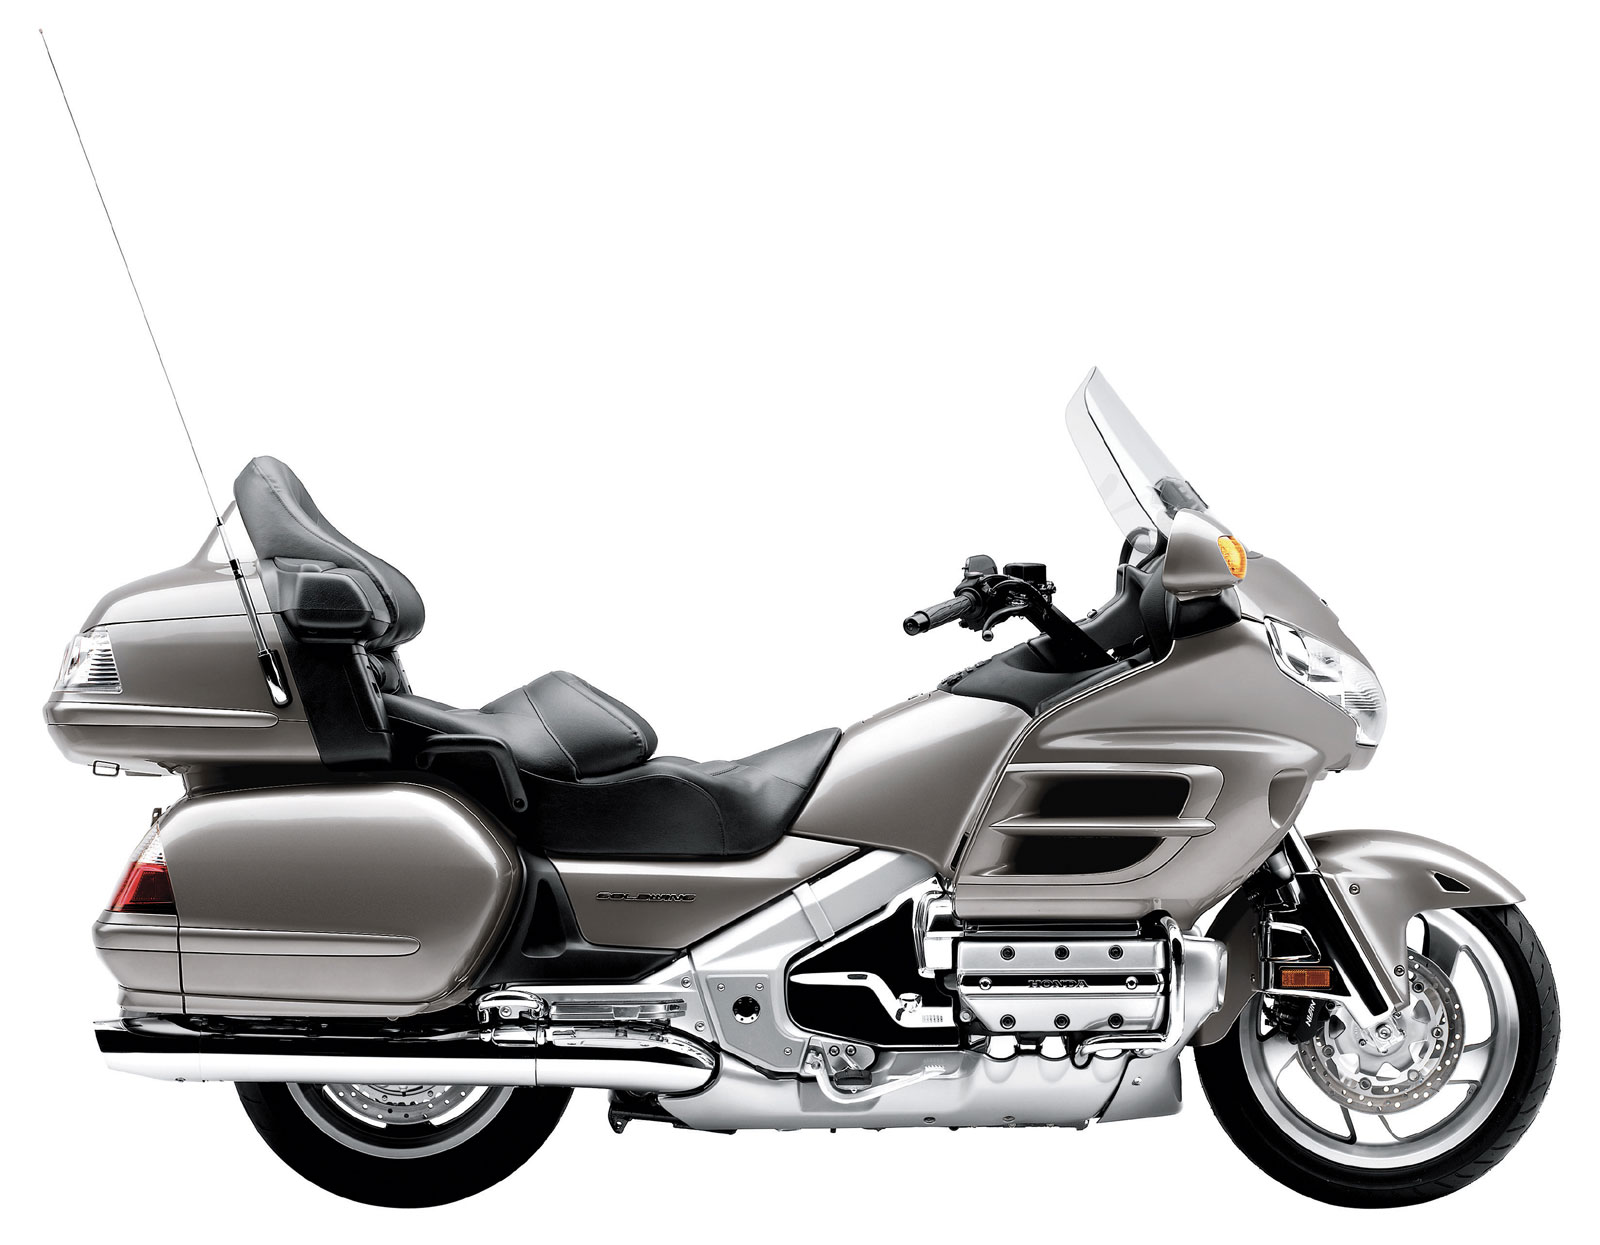 Honda GL 1800 Gold Wing 2007 images #82136